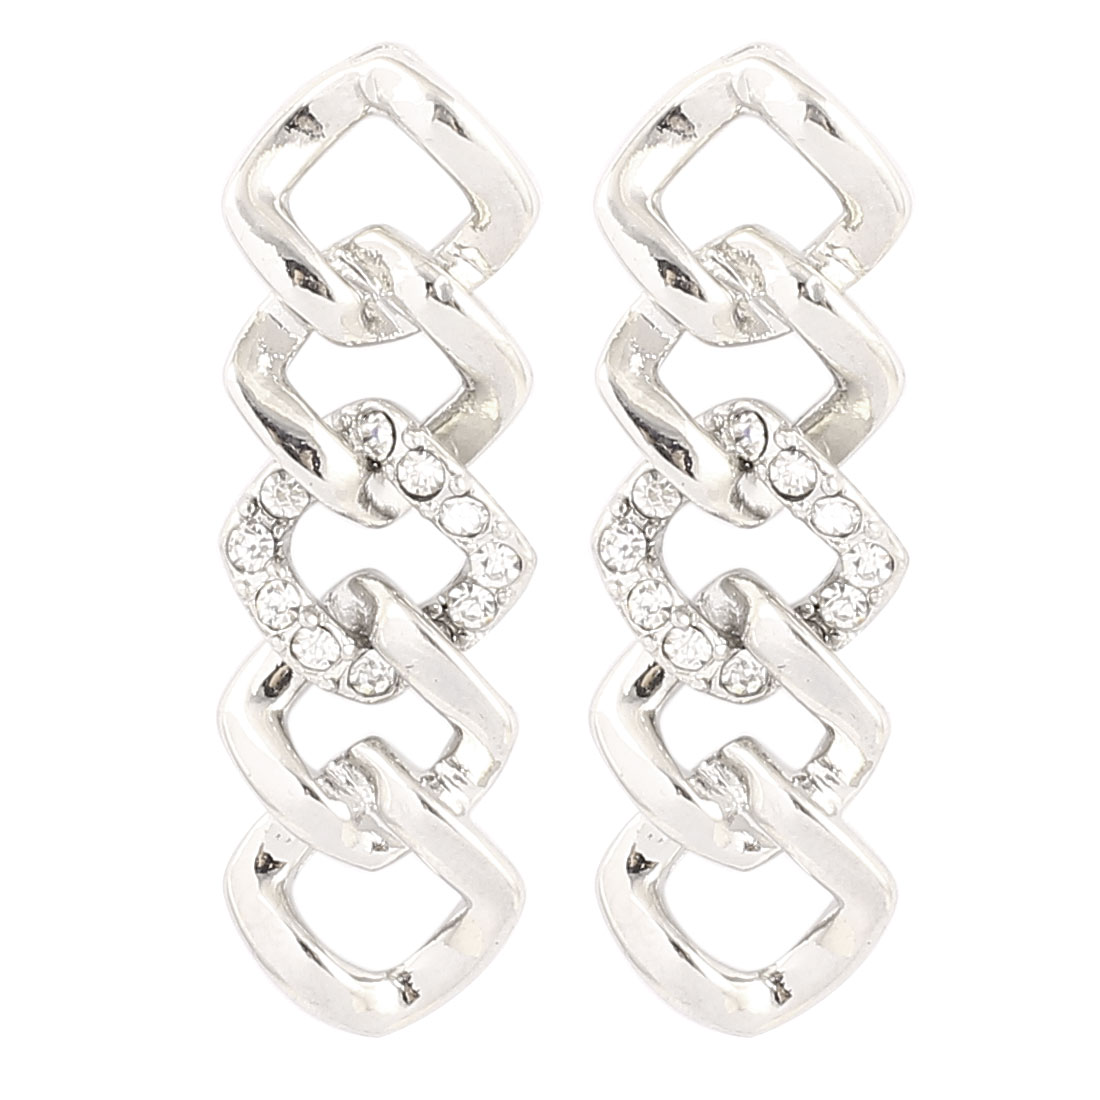 Woman Plastic Crystals Decor Rhombus Shape Metal Pierced Stud Pin Ear Nail Earrings Earbobs Silver Tone 4cm Length Pair